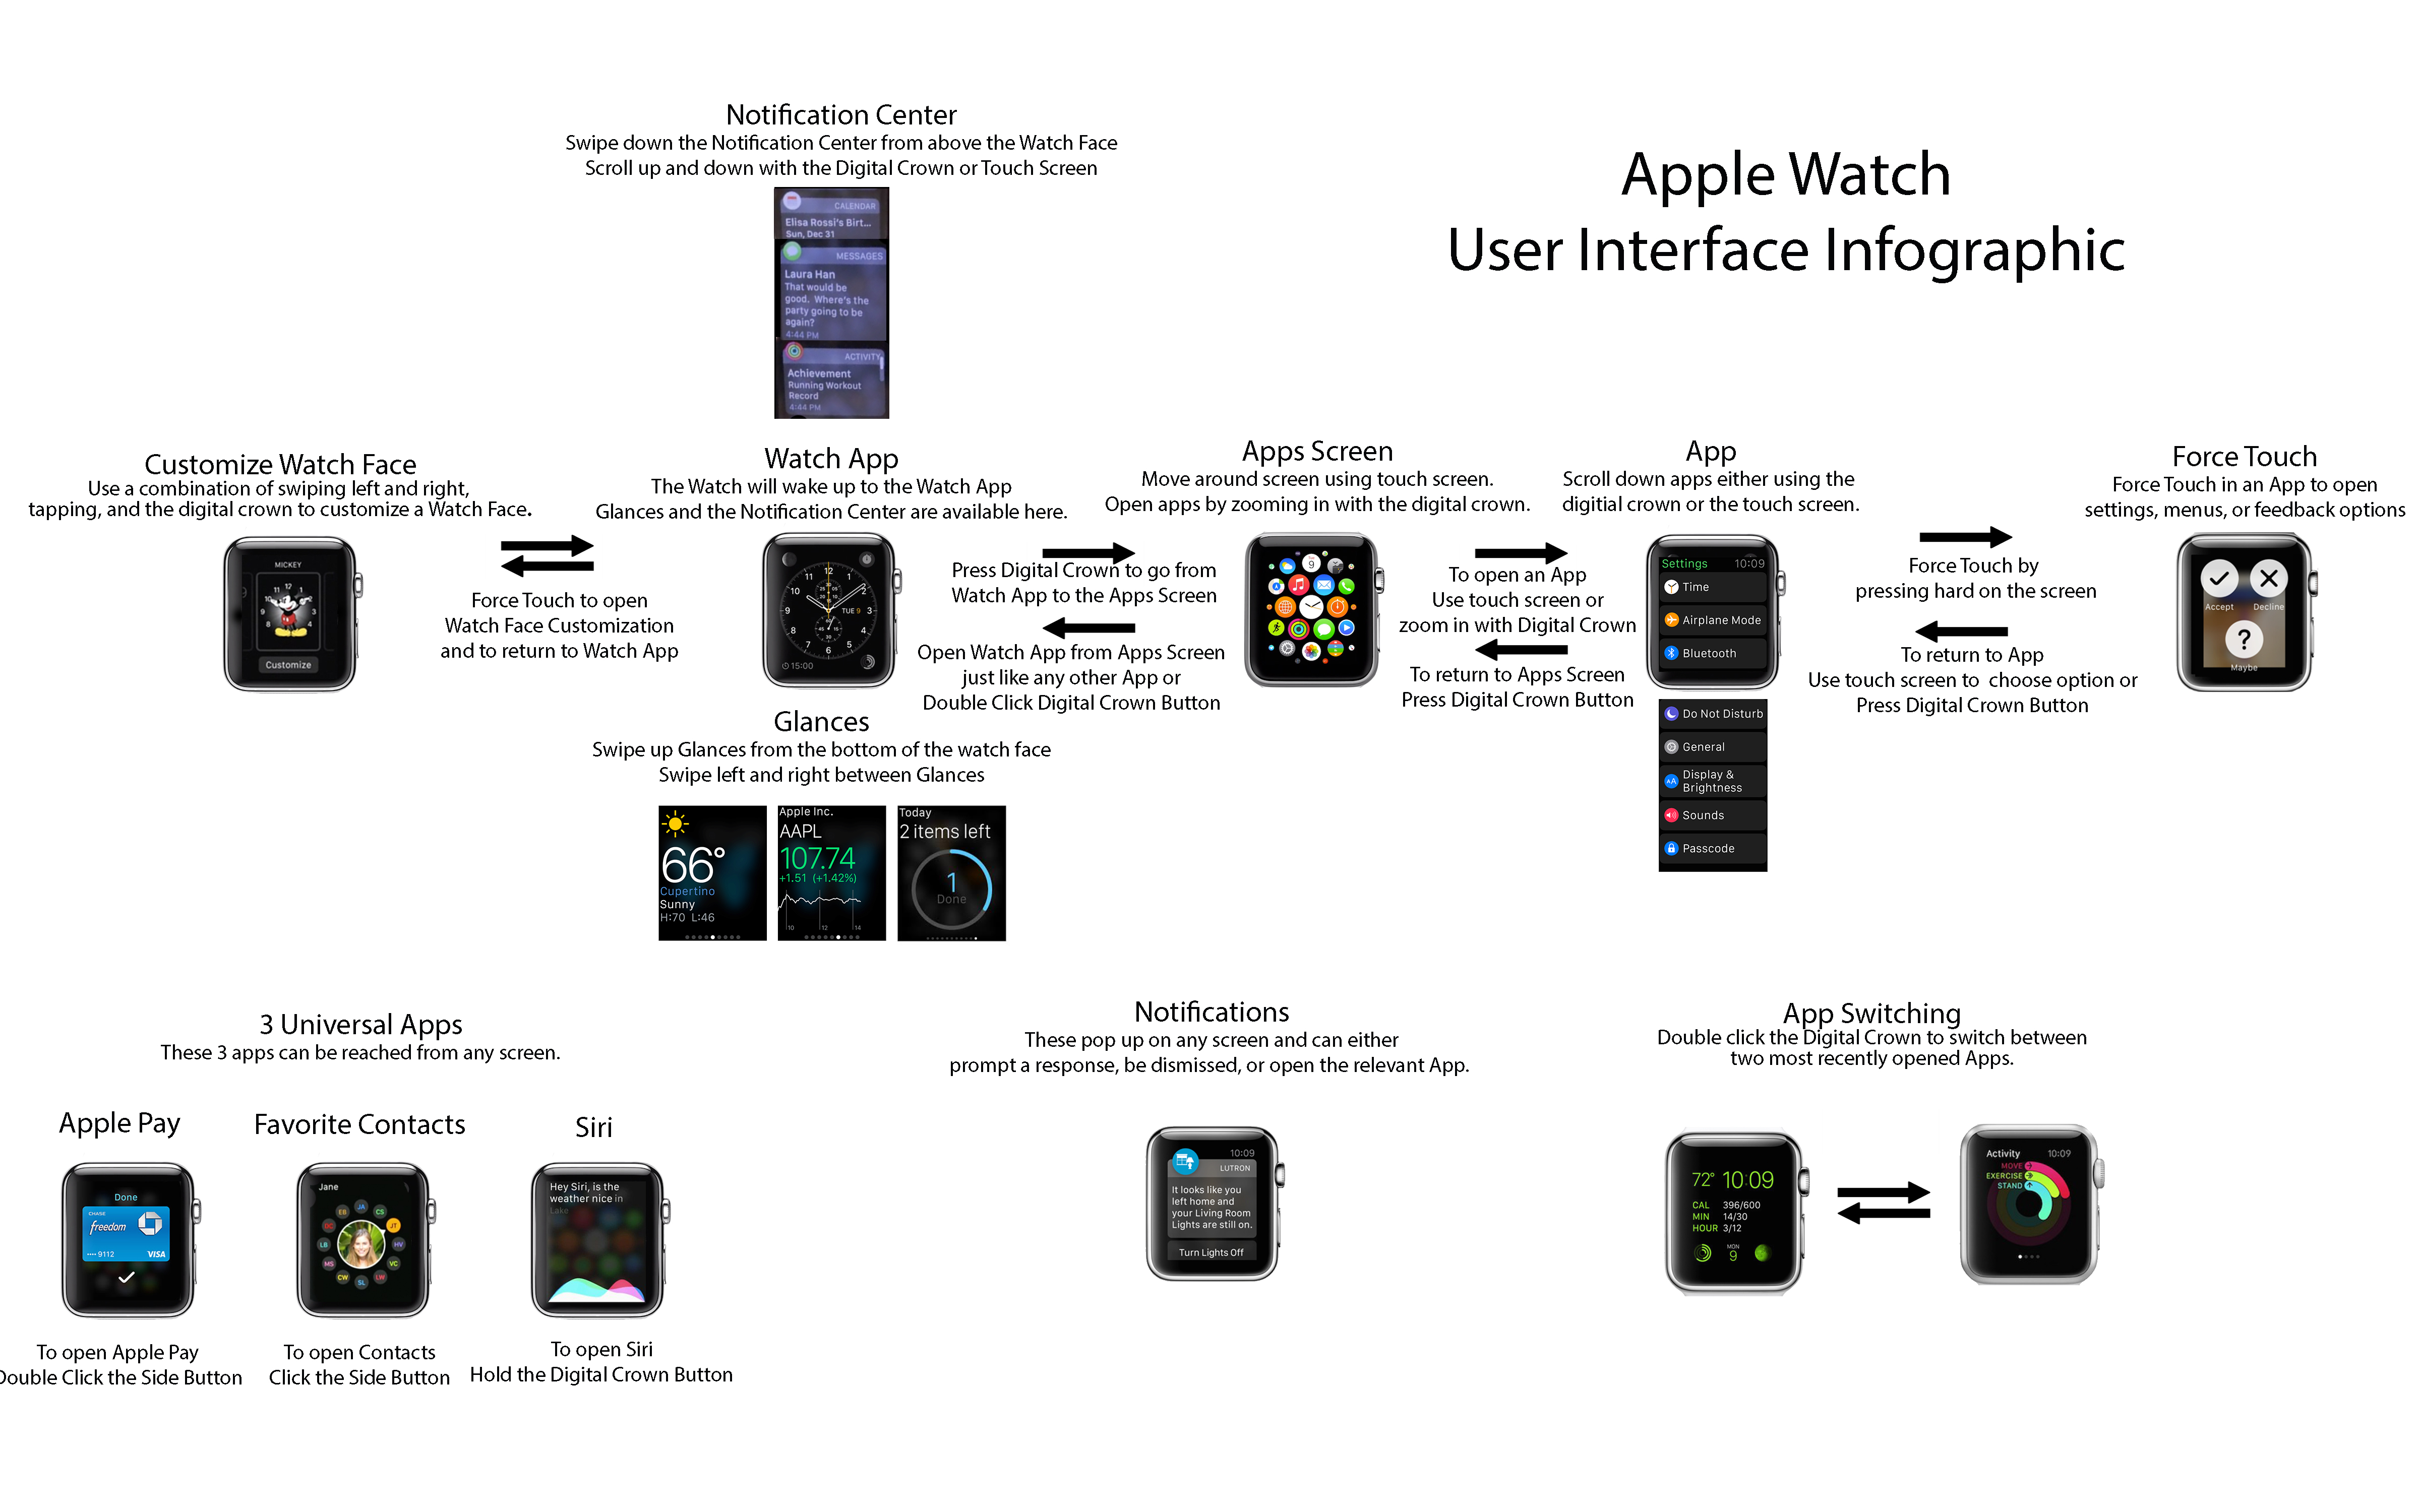 interfata Apple Watch explicata